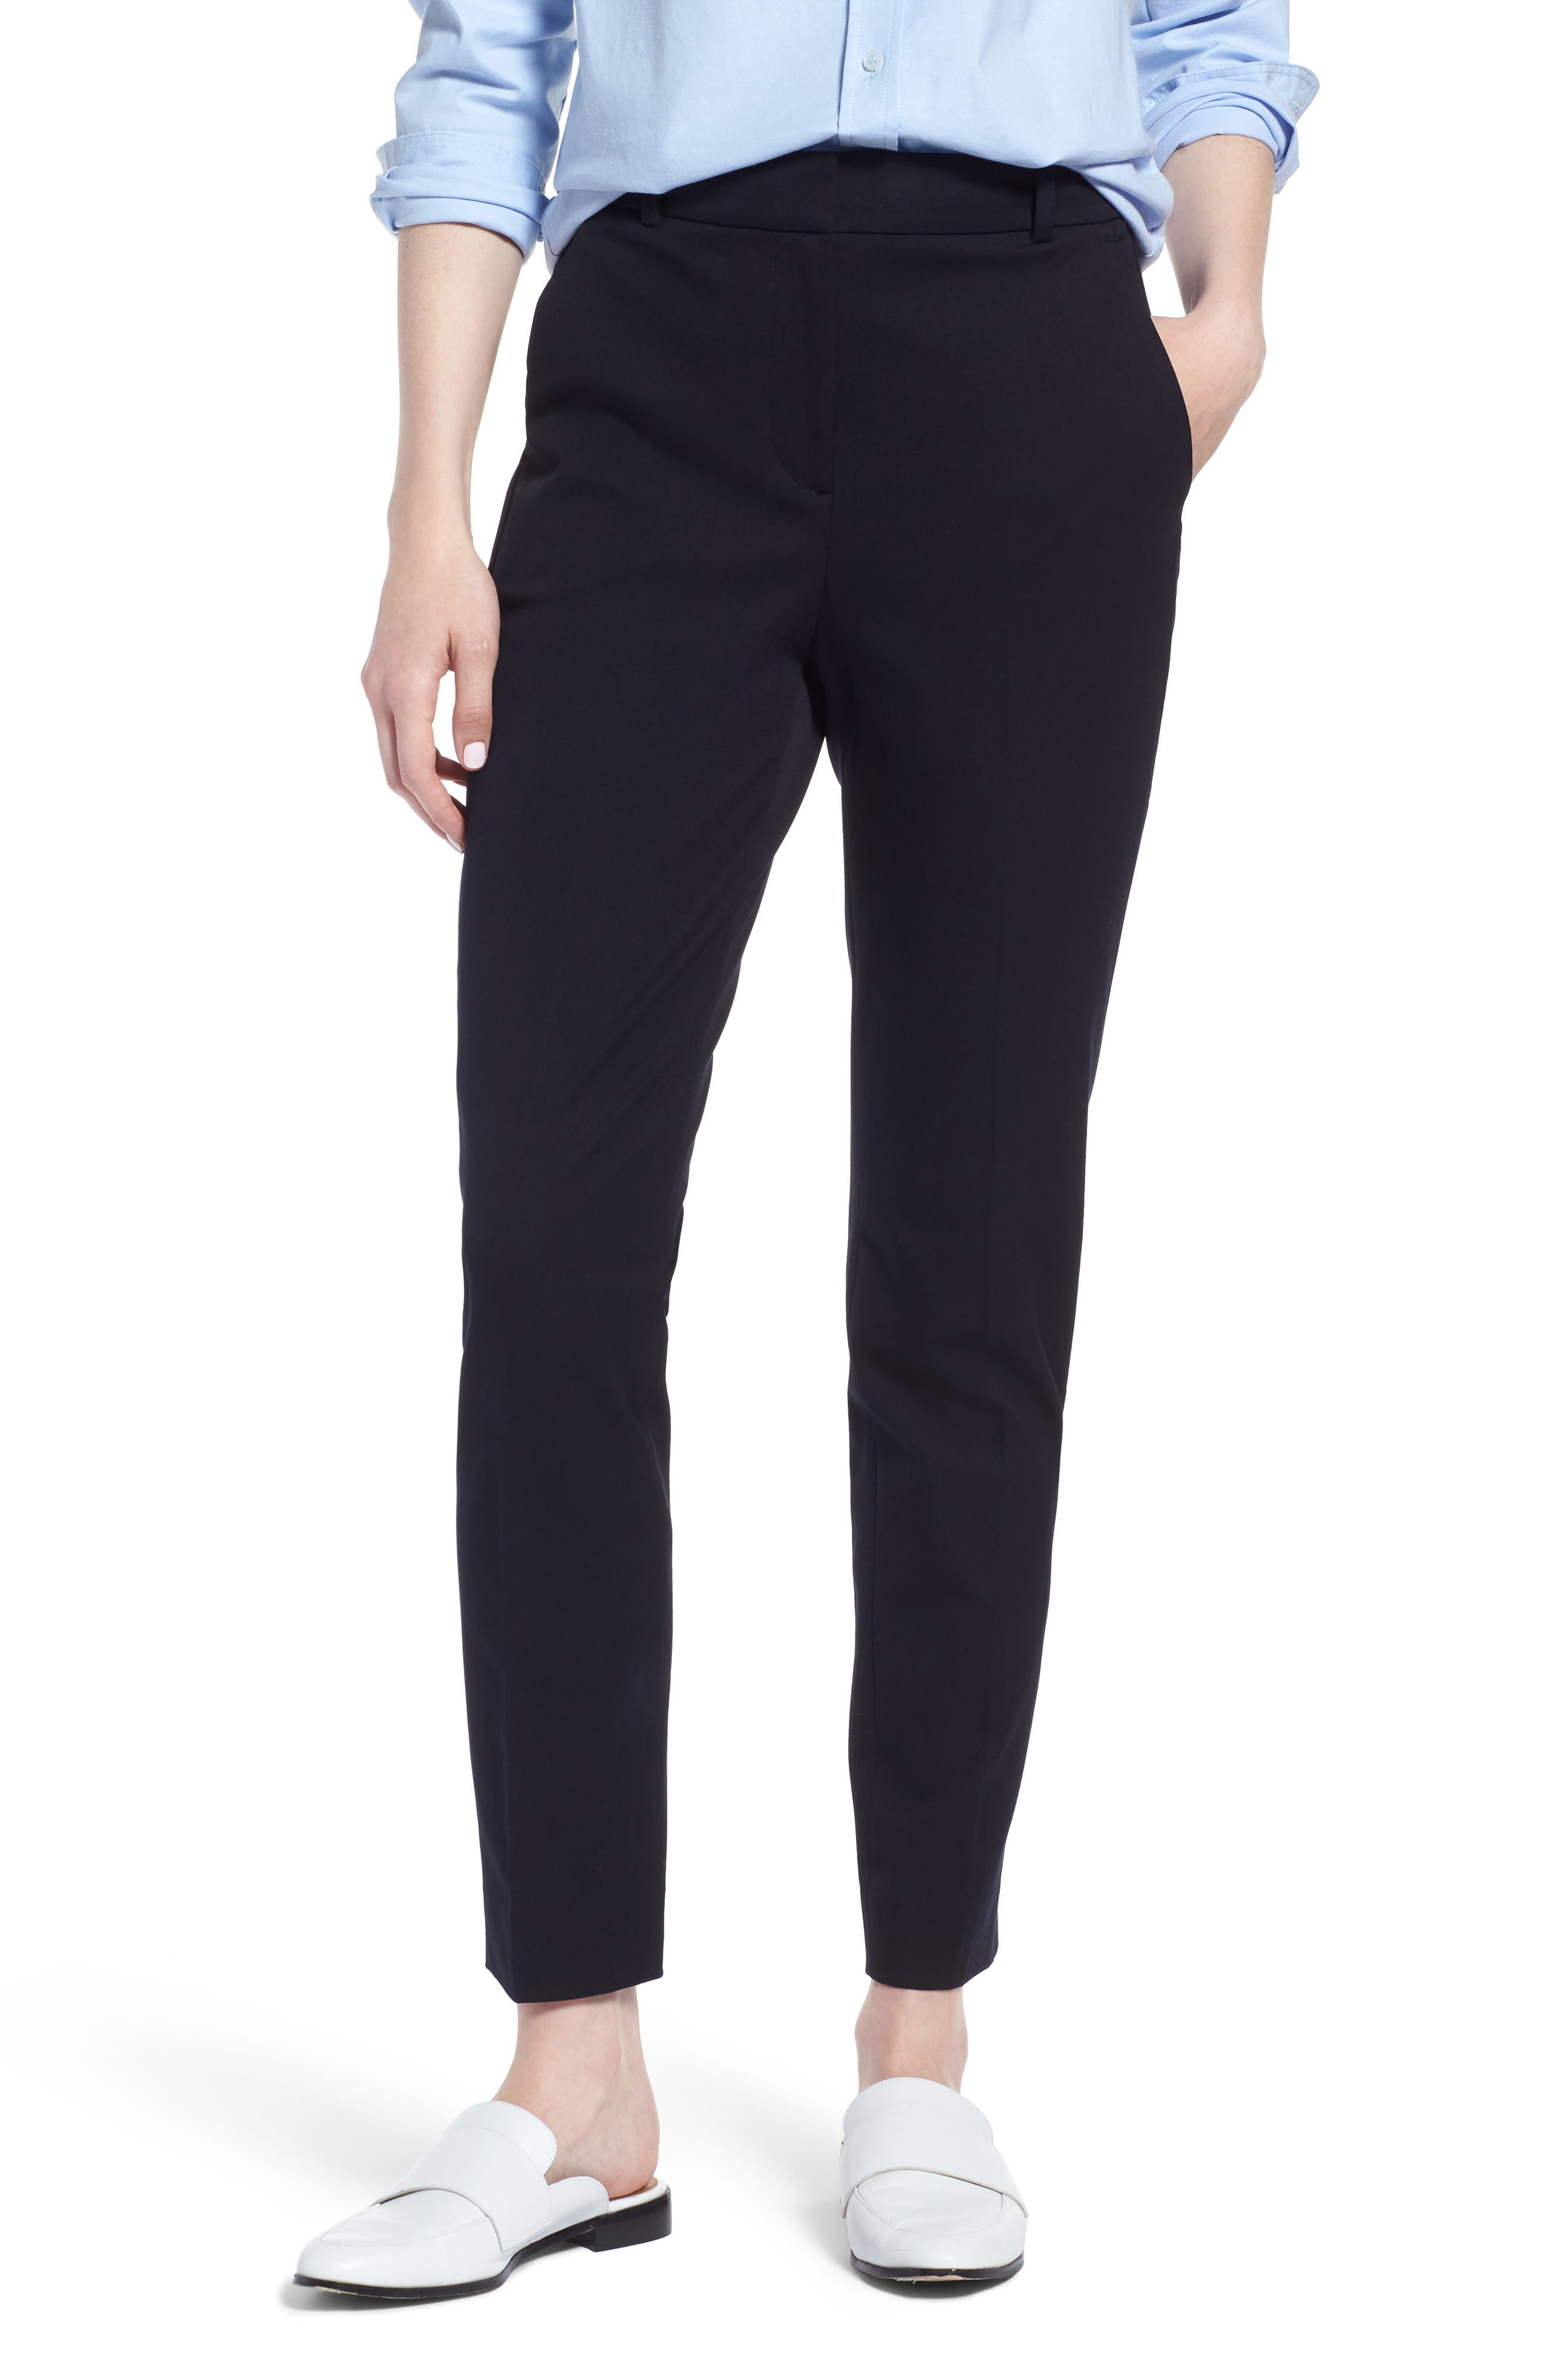 J.Crew Cameron Seasonless High Rise Crop Pants (Regular & Petite)